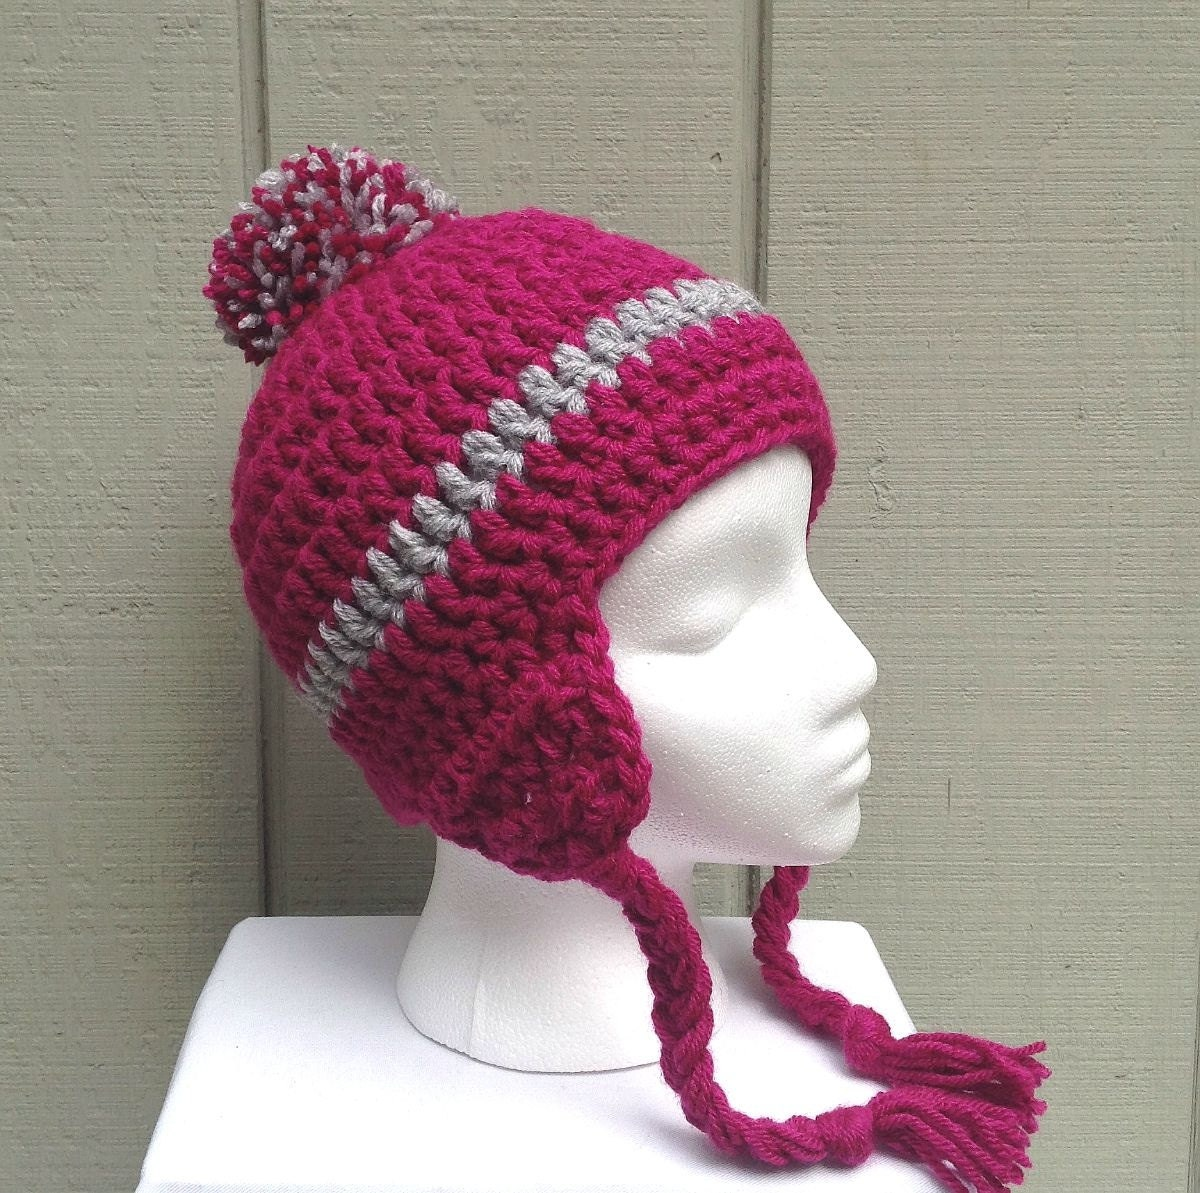 Crochet Womens Hat With Ear Flaps Pattern : Ear flap beanie Pink crochet ear flap hat Pom pom beanie